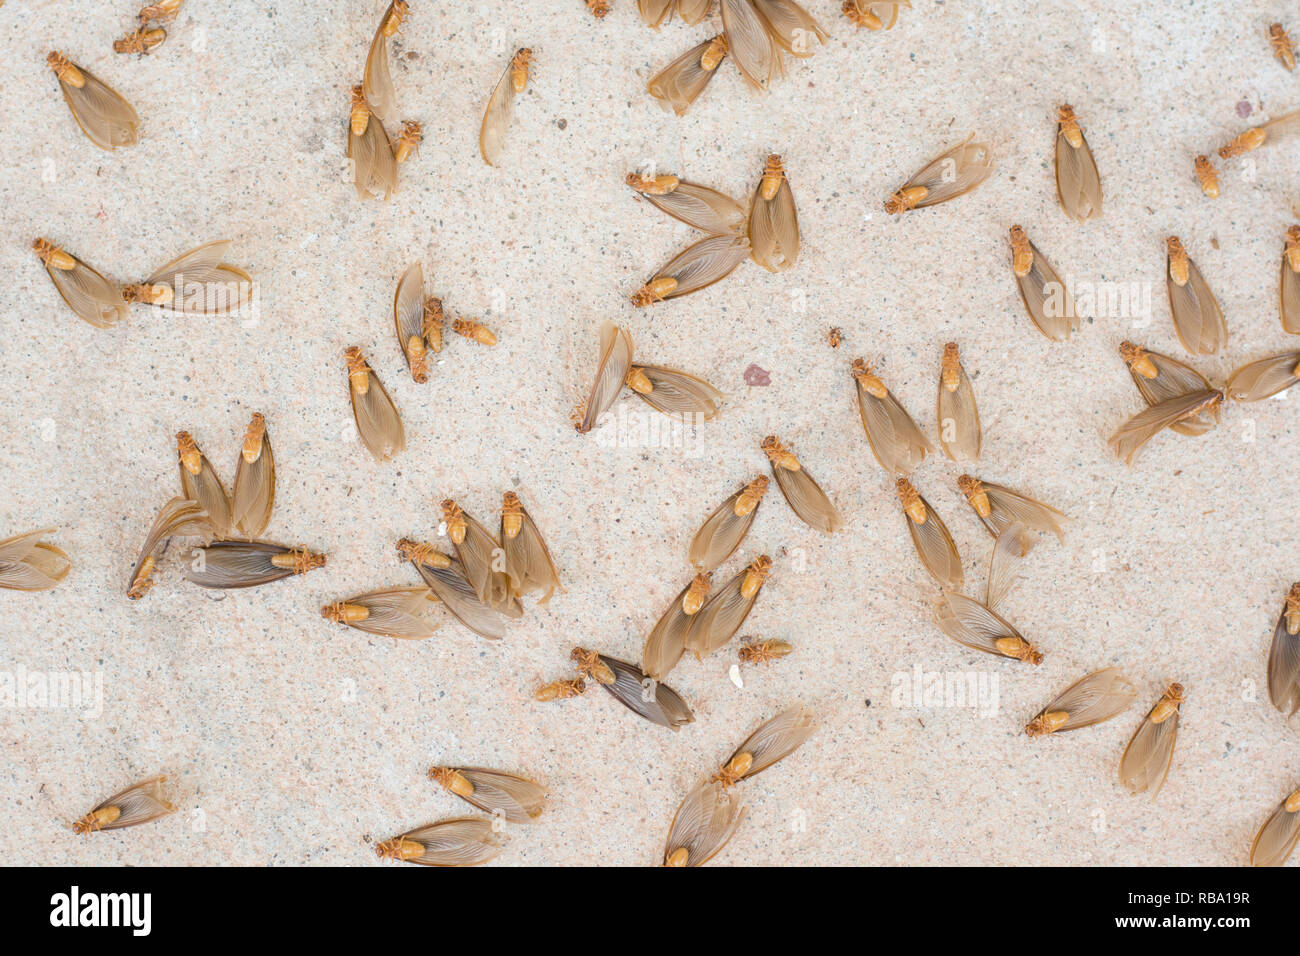 Winged Termite High Resolution Stock Photography And Images Alamy